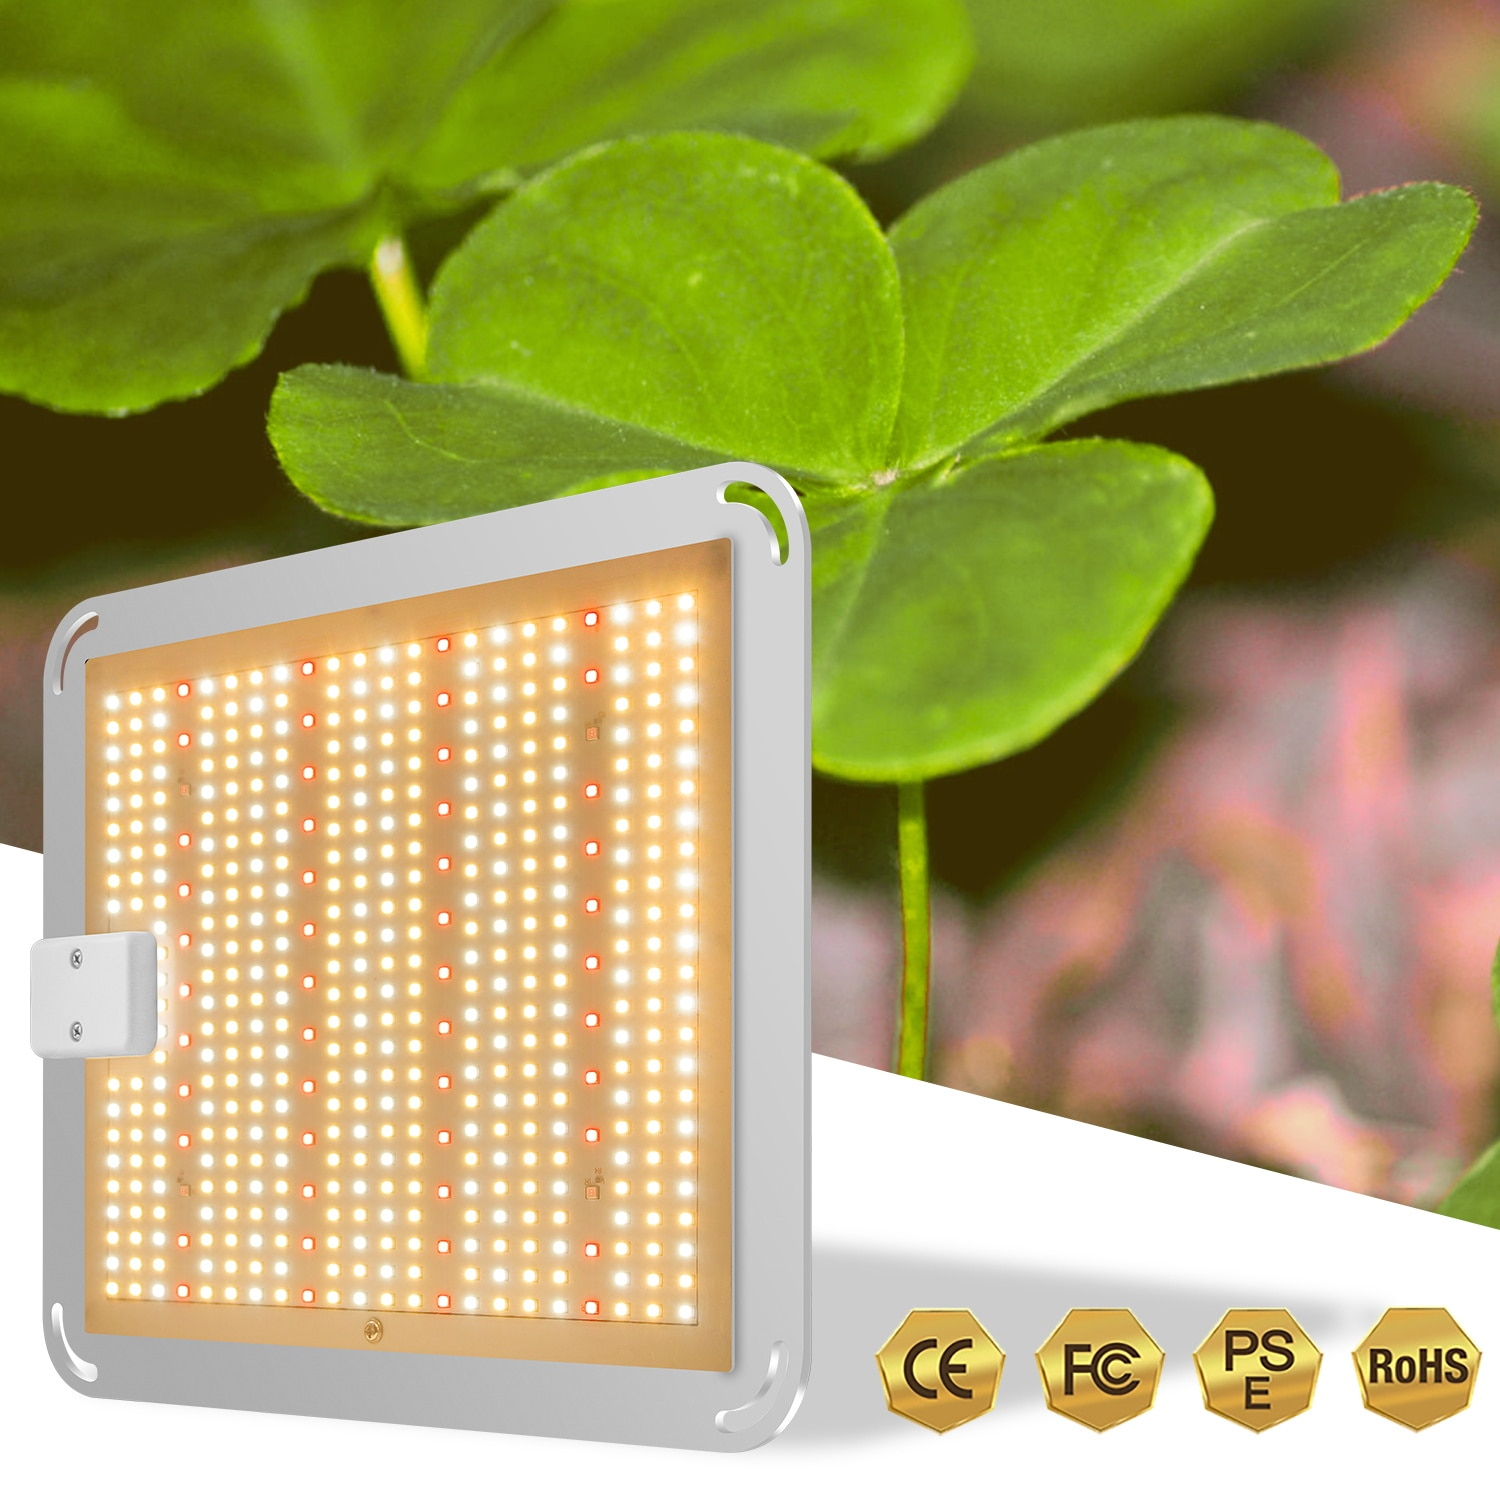 100W LED Grow Light Full Spectrum Quantum Board Phyto Lamp,for Greenhouse Plant Light Hydroponic Plant Growth Lighting enlarge